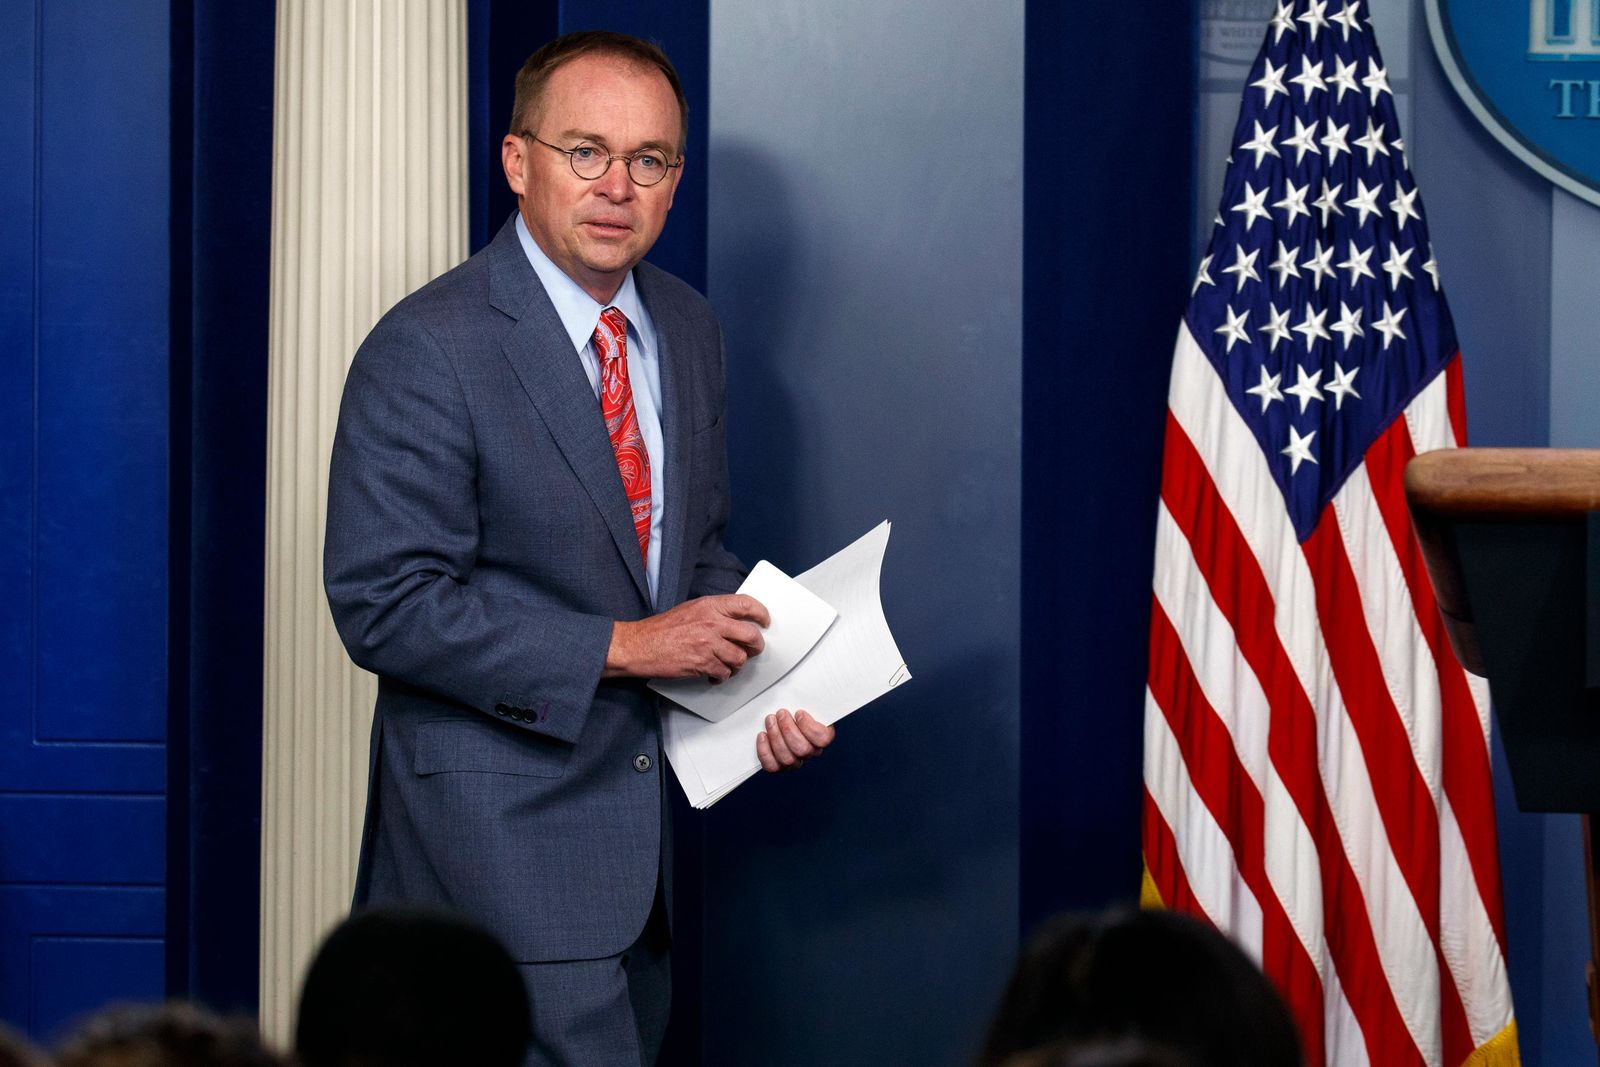 FILE - In this Thursday, Oct. 17, 2019, file photo, White House chief of staff Mick Mulvaney arrives to a news conference, in Washington. al meeting at his own golf club, although the president has now dropped that plan. (AP Photo/Evan Vucci, File)